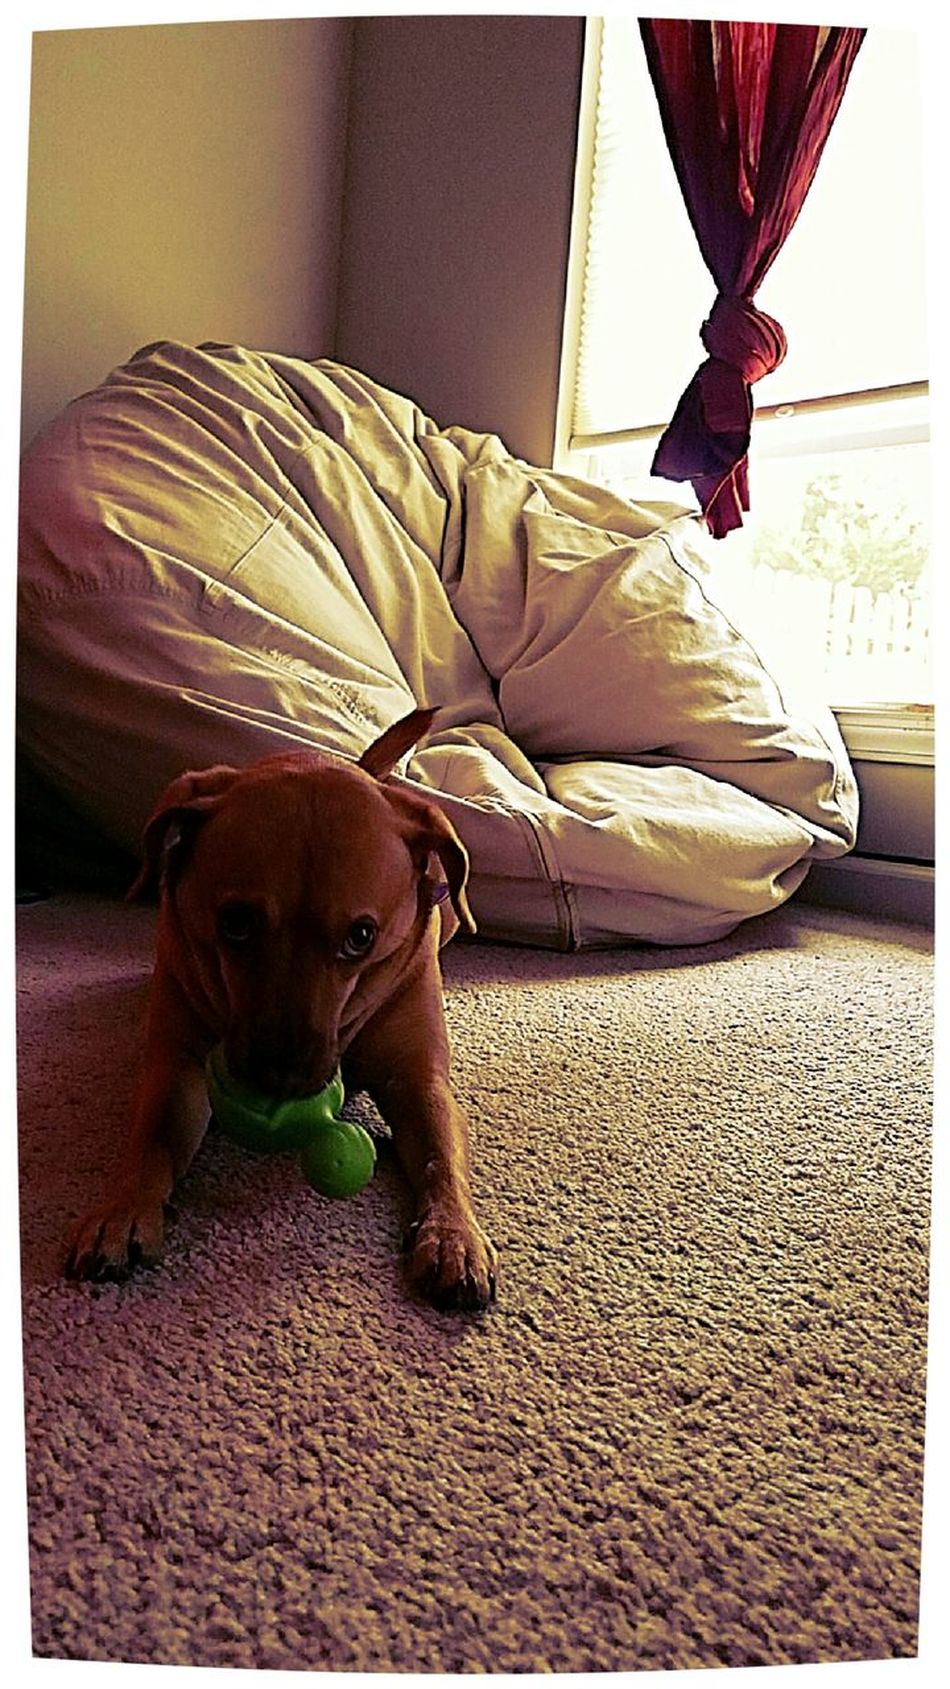 My Turtle Dog Turtle Toy Dogtoy Dogportrait Myturtle Cute Animal Themes Full Length Pets One Animal No People Happy Dogsofeyeem Ruby Puppy Canine Canine Companion Love Beanbag Window Carpet Textures And Surfaces Paws Dogface